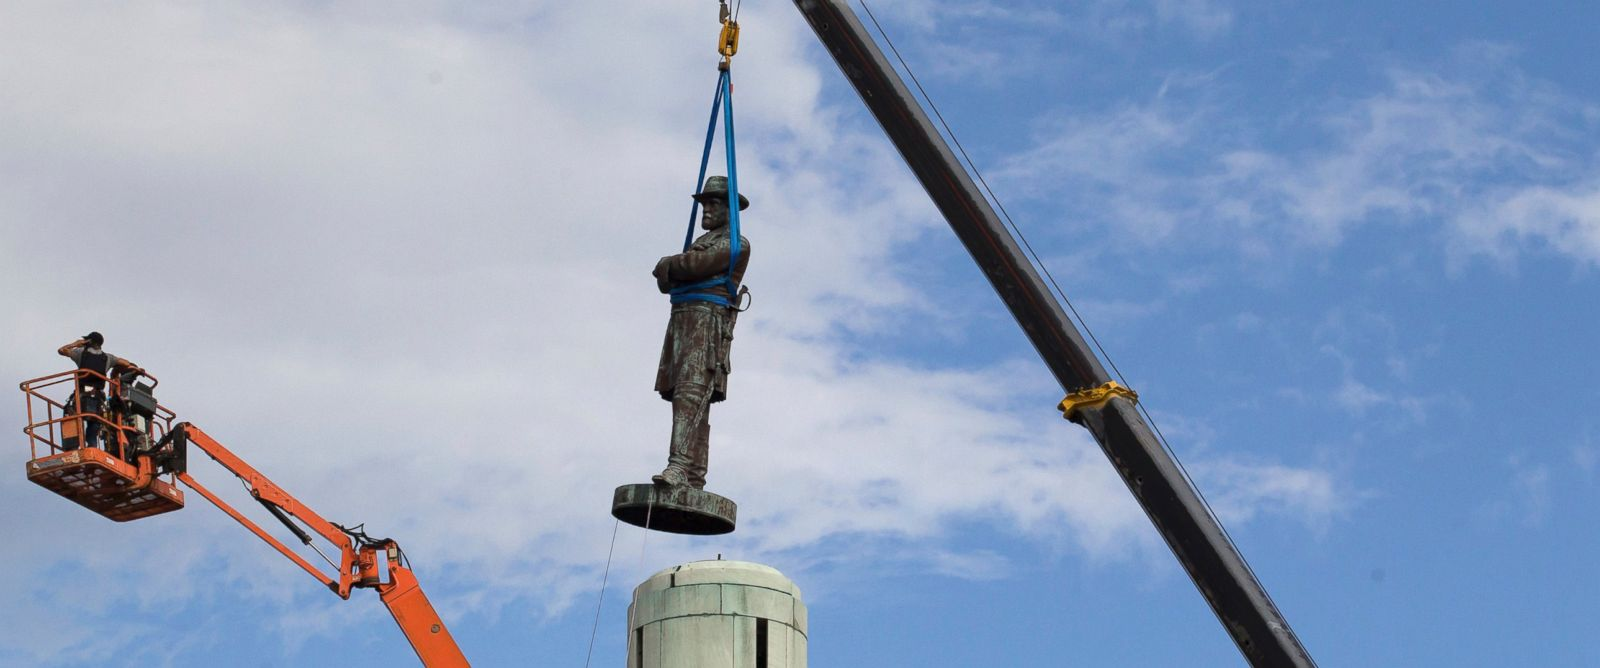 An image of a crane carrying a statue